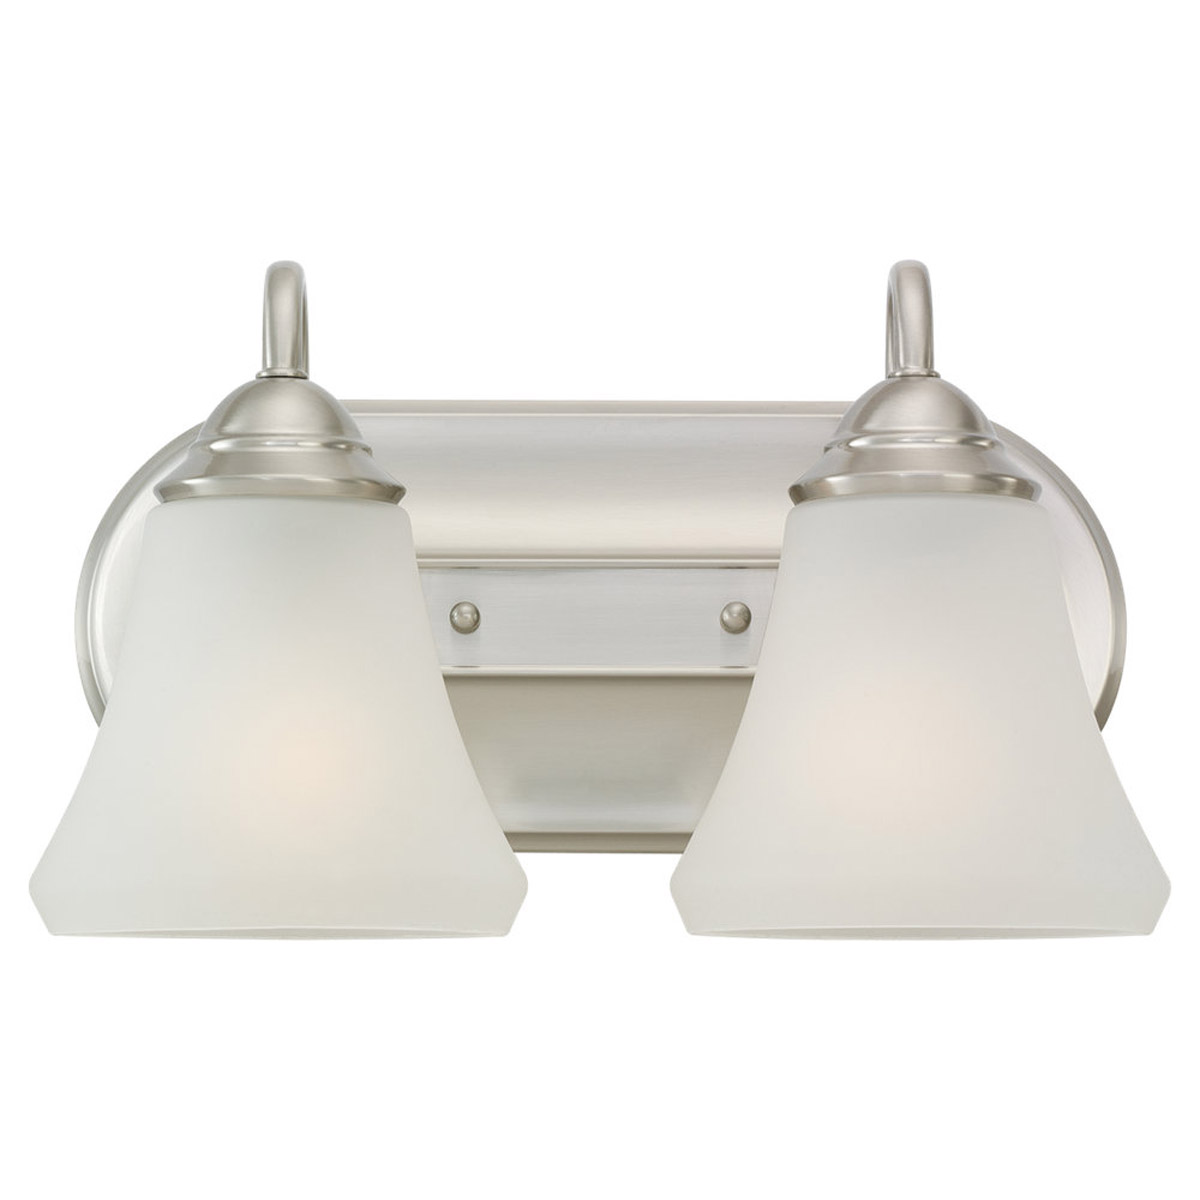 Sea Gull Lighting Fiona 2 Light Wall / Bath / Vanity in Brushed Nickel 44556-962